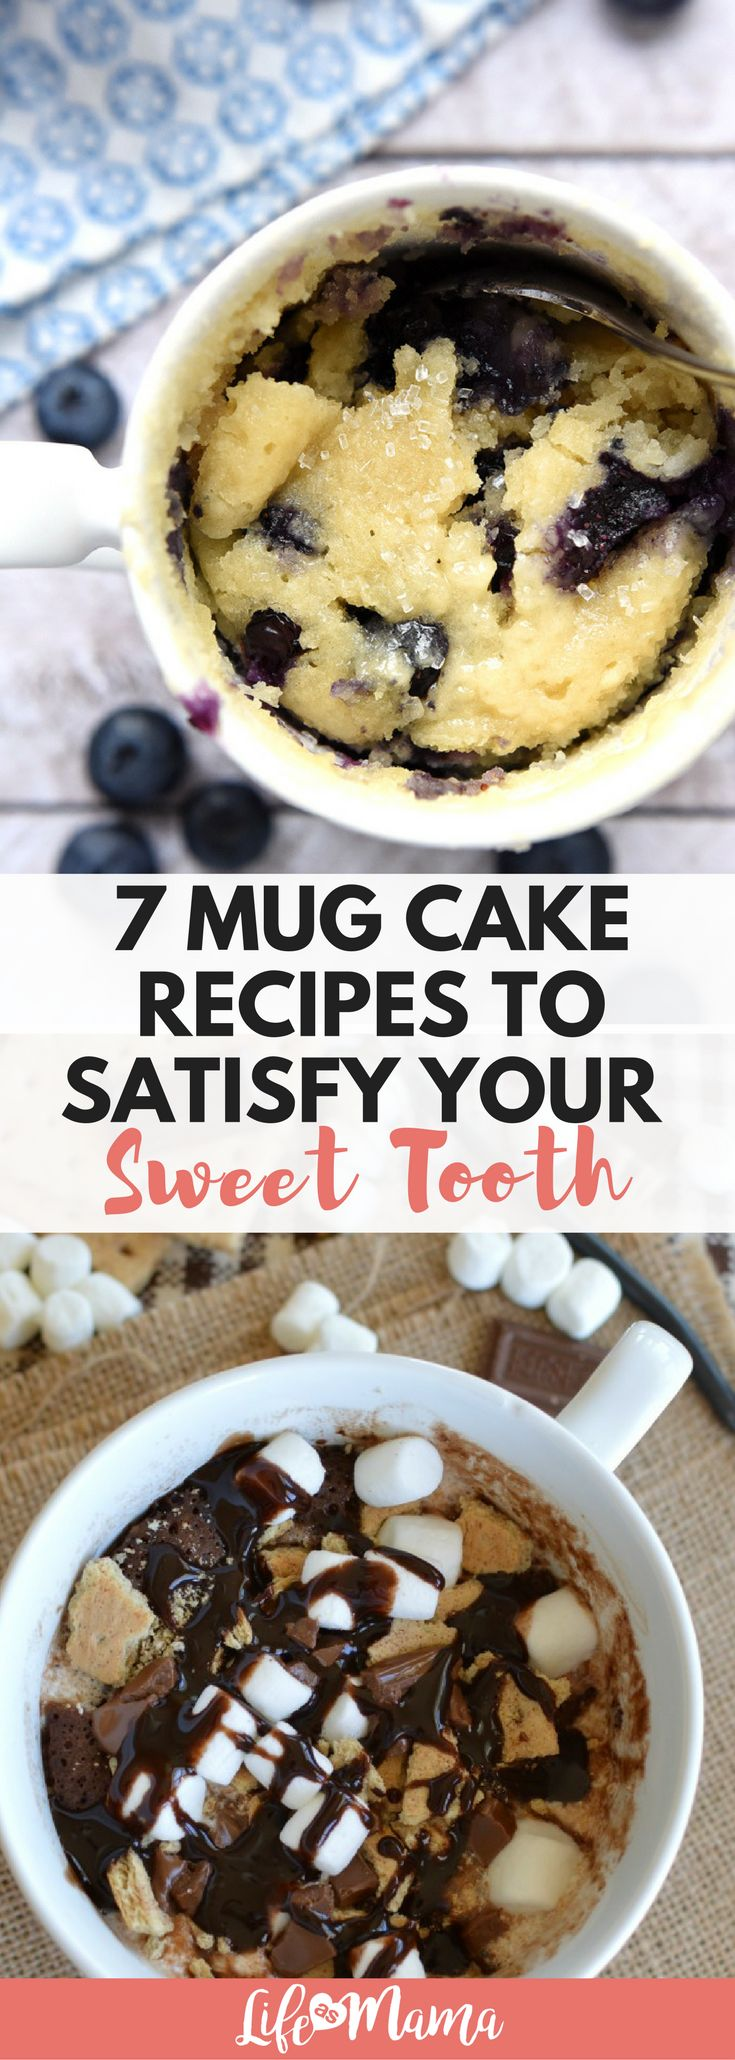 The mug cake is a single serving cake that's whipped up and heated in a coffee mug just in the microwave! Perfect for satisfying your sweet tooth, without wreaking havoc on your waistline.